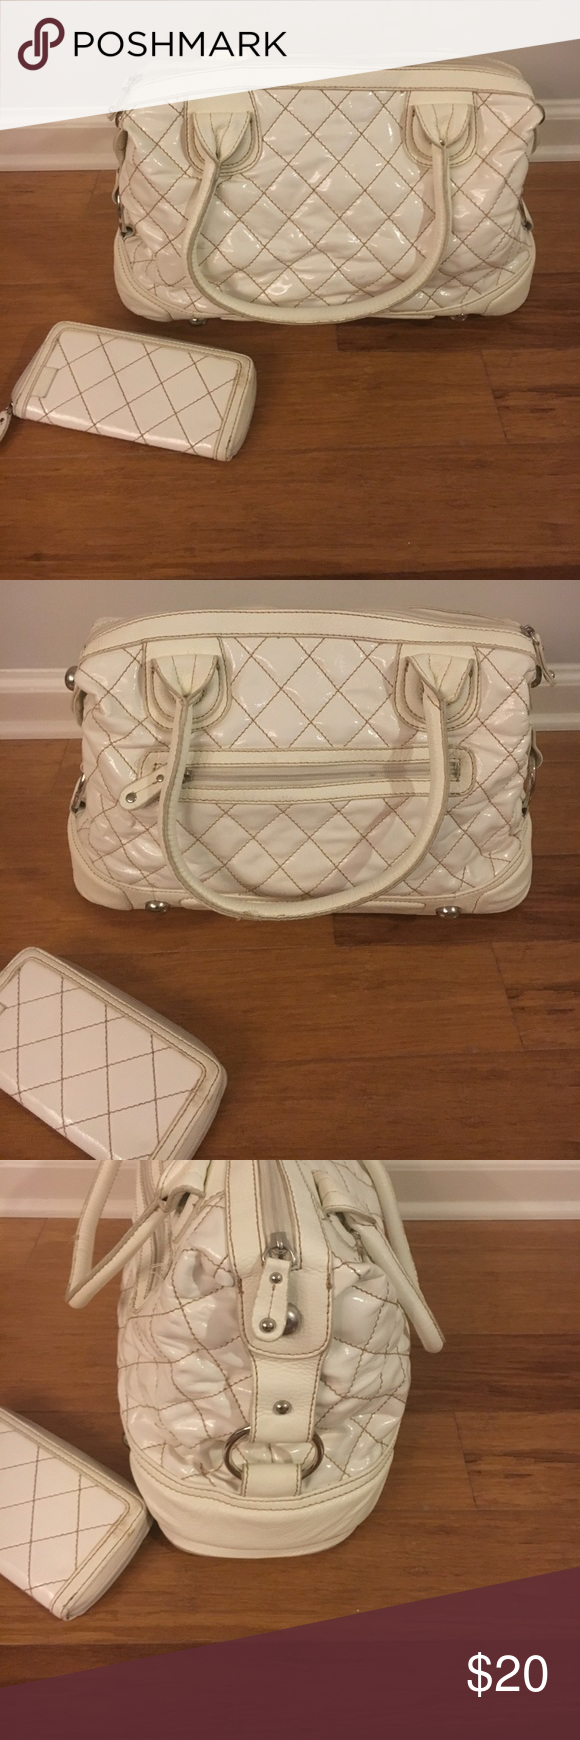 Aldo Satchel Quilted bag with matching wallet! Cute floral interior. Minimal wear Aldo Bags Satchels